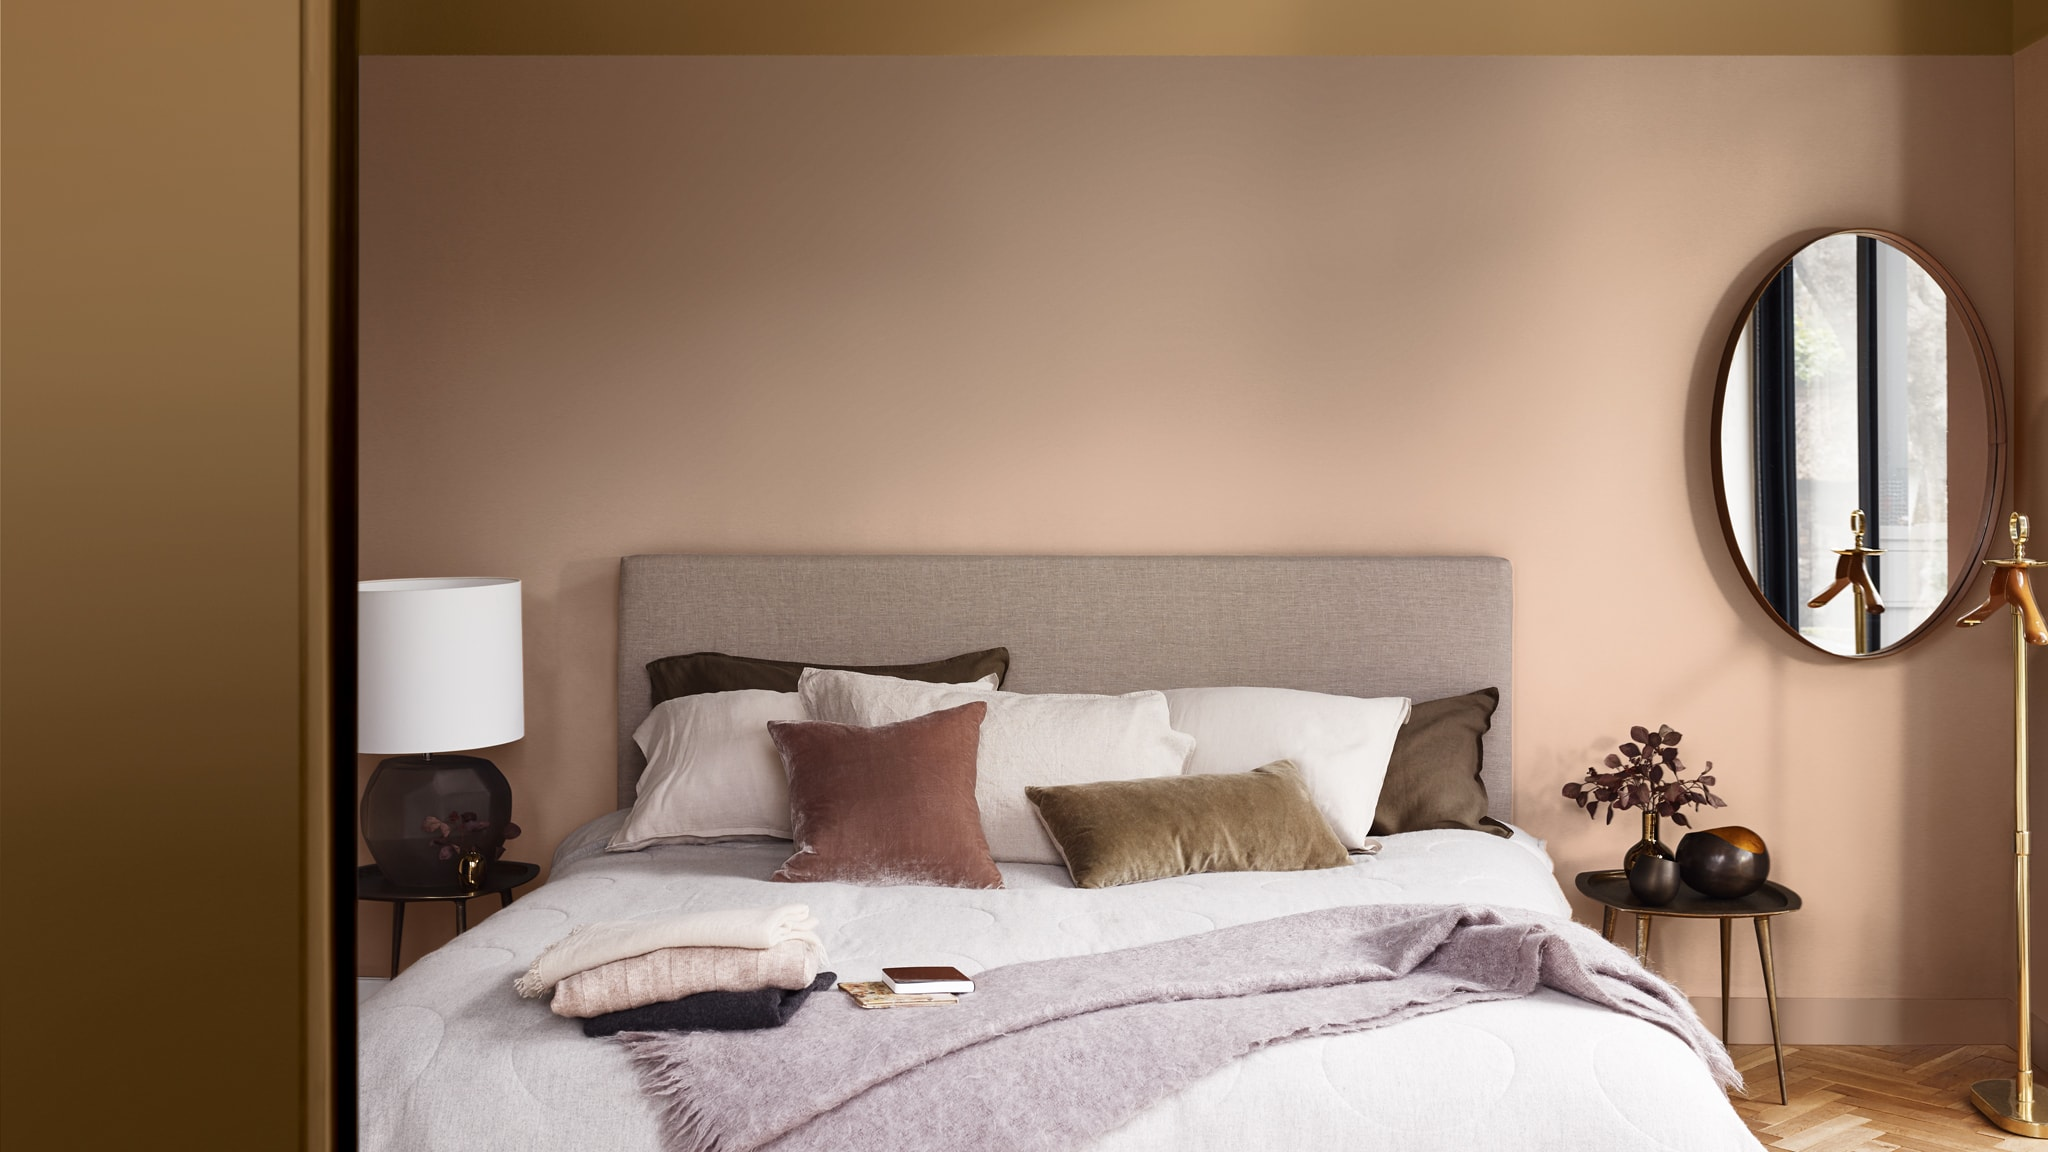 Deco-Paints-Colour-Futures-Colour-of-the-Year-2019-A-place-to-think-Bedroom-Inspiration-36